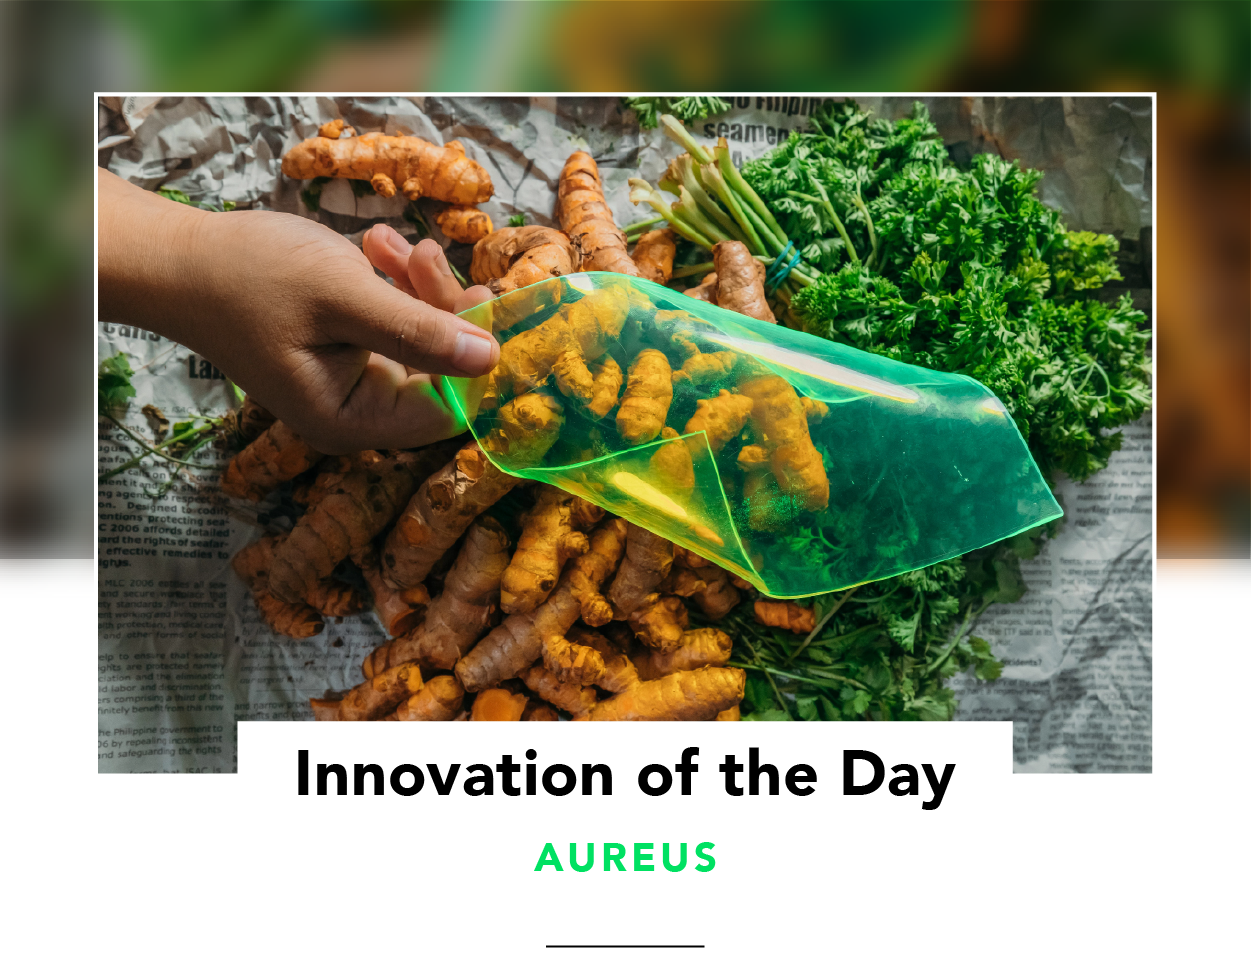 Innovation of the Day | Solar film by AuREUS uses crop waste to generate renewable energy